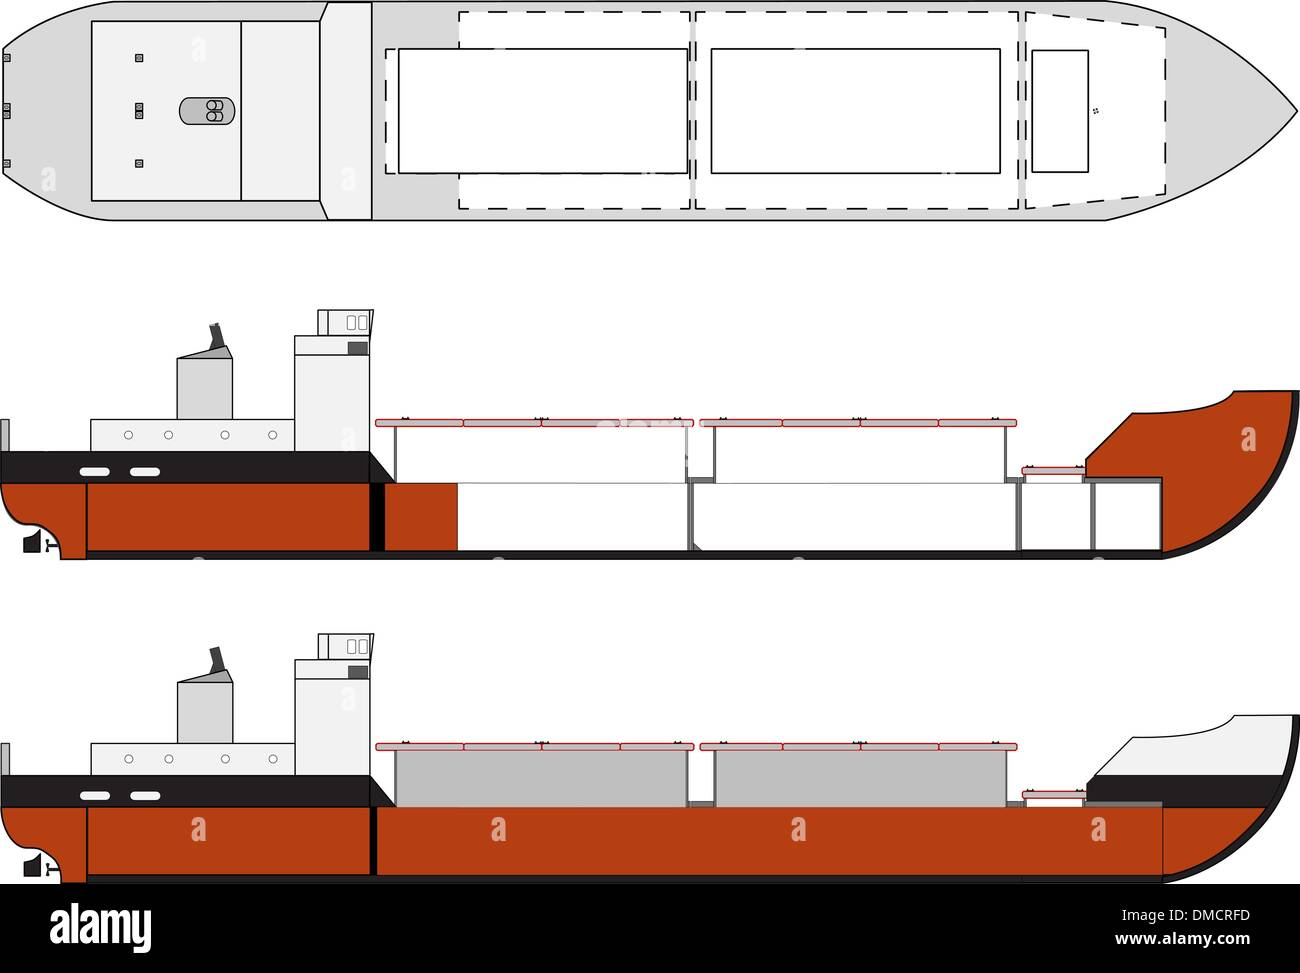 hight resolution of cargo ship with hold details